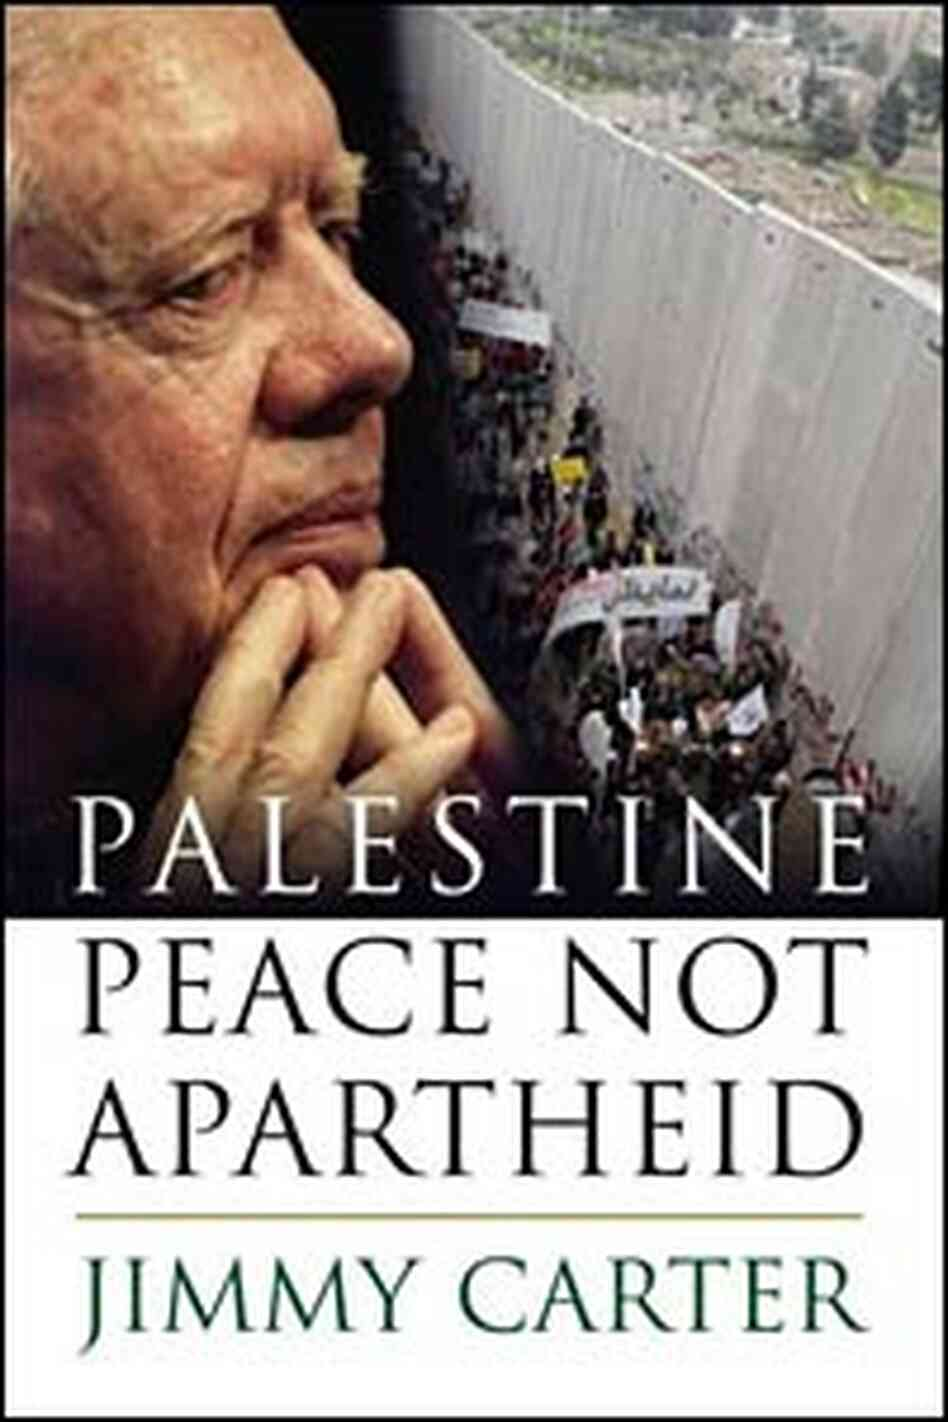 Jimmy Carter; Palestine: Peace Not Apartheid